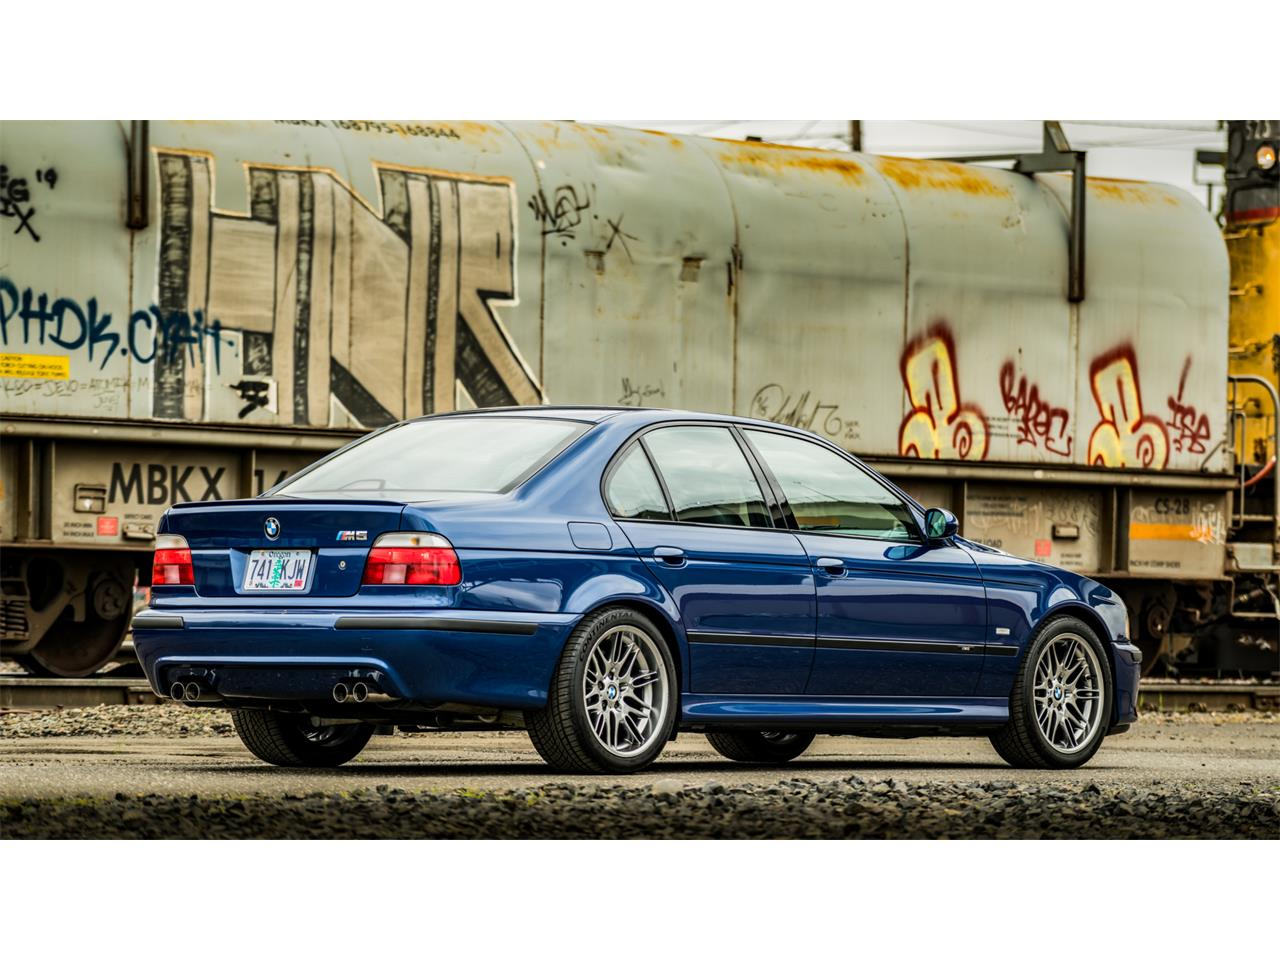 Large Picture of 2000 BMW M5 Auction Vehicle Offered by Bring A Trailer - Q43C